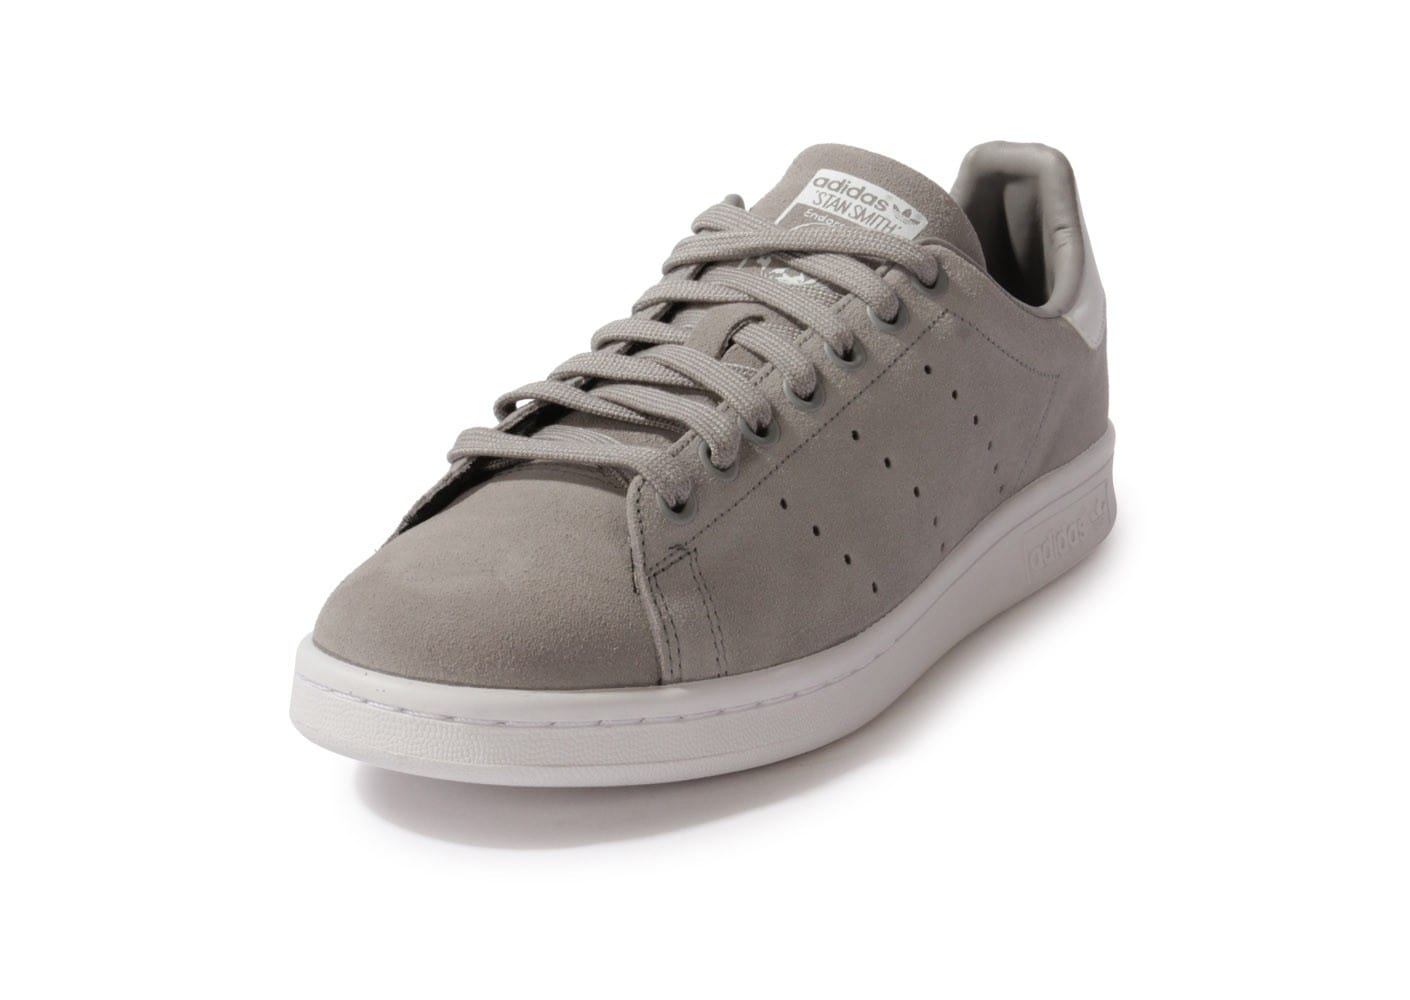 adidas stan smith grise chaussures homme chausport. Black Bedroom Furniture Sets. Home Design Ideas